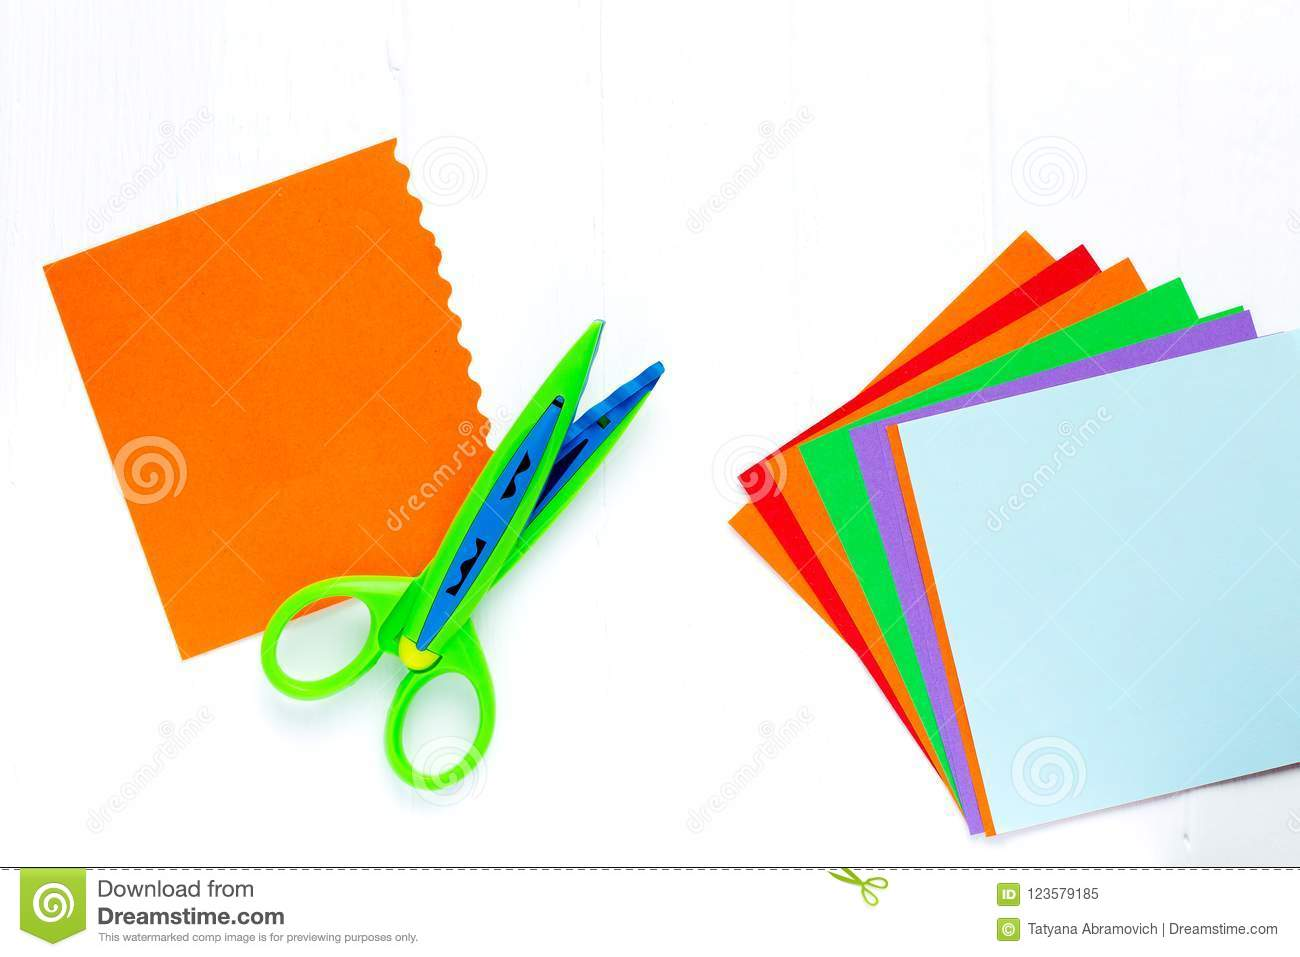 Color Paper For Origami Is A Fan Scissors With A Wavy Edge On